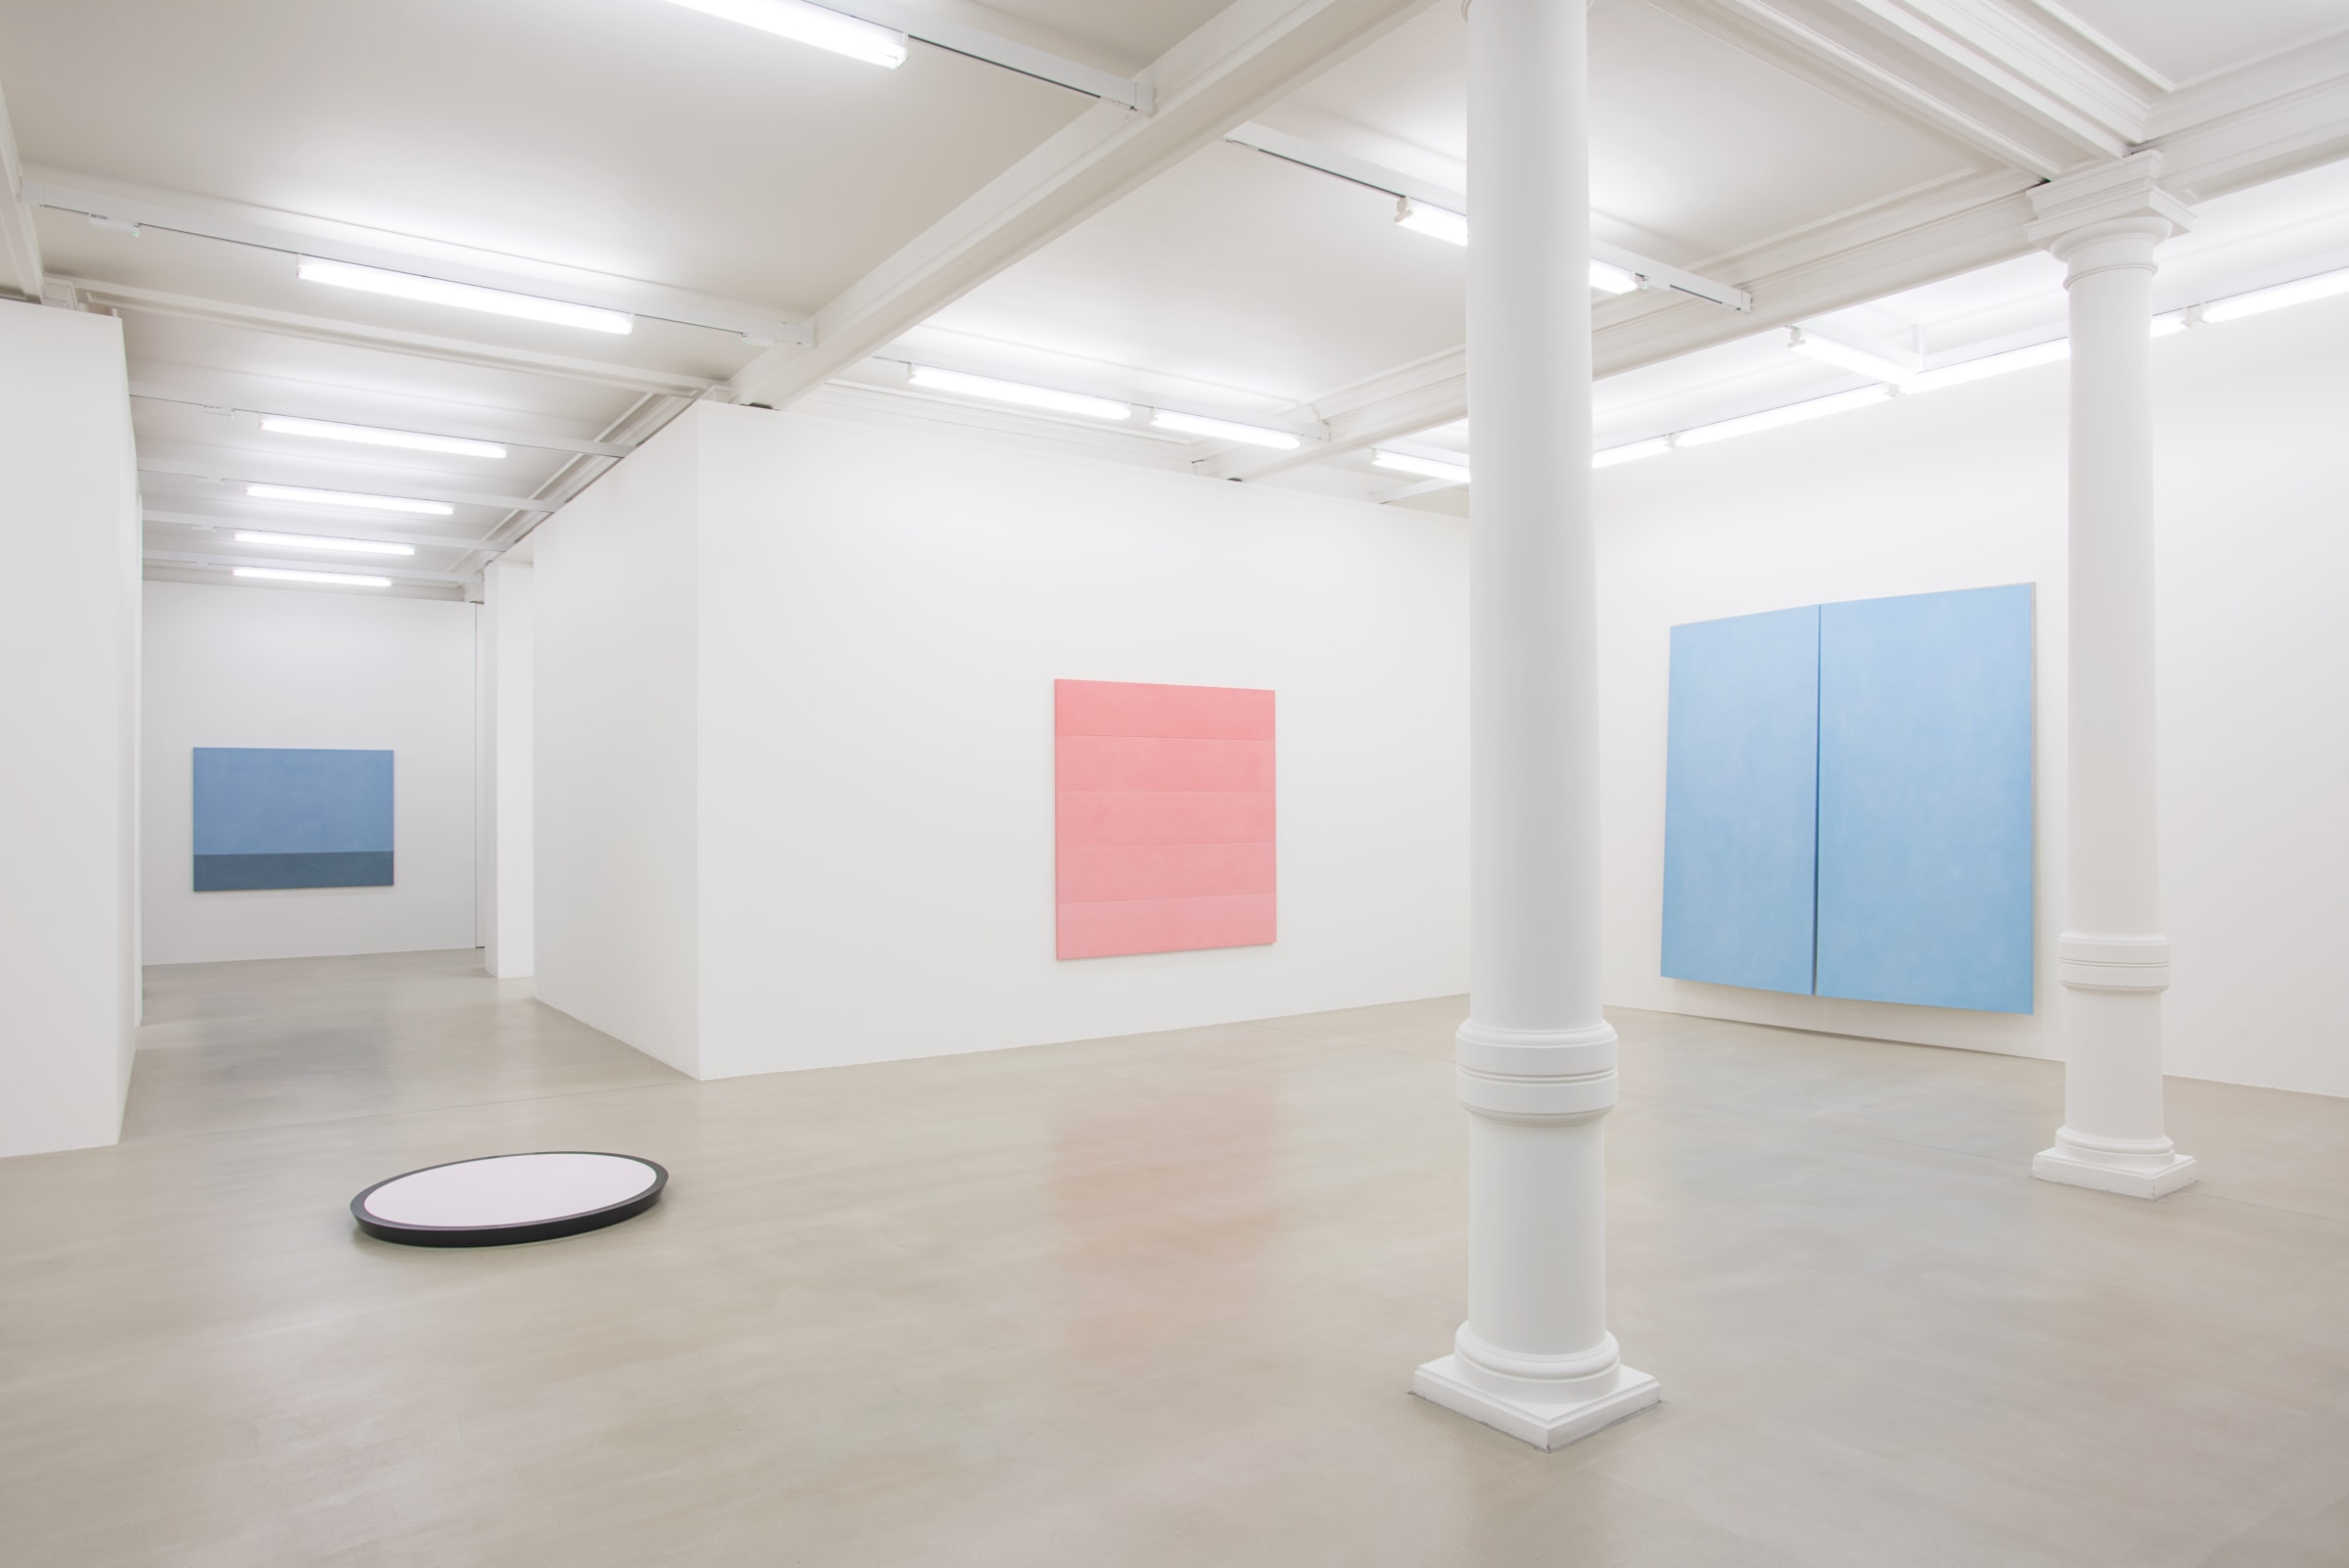 3 pastel paintings hang on the wall around a corner. There are 2 white columns in the room and a circular white object on the floor.